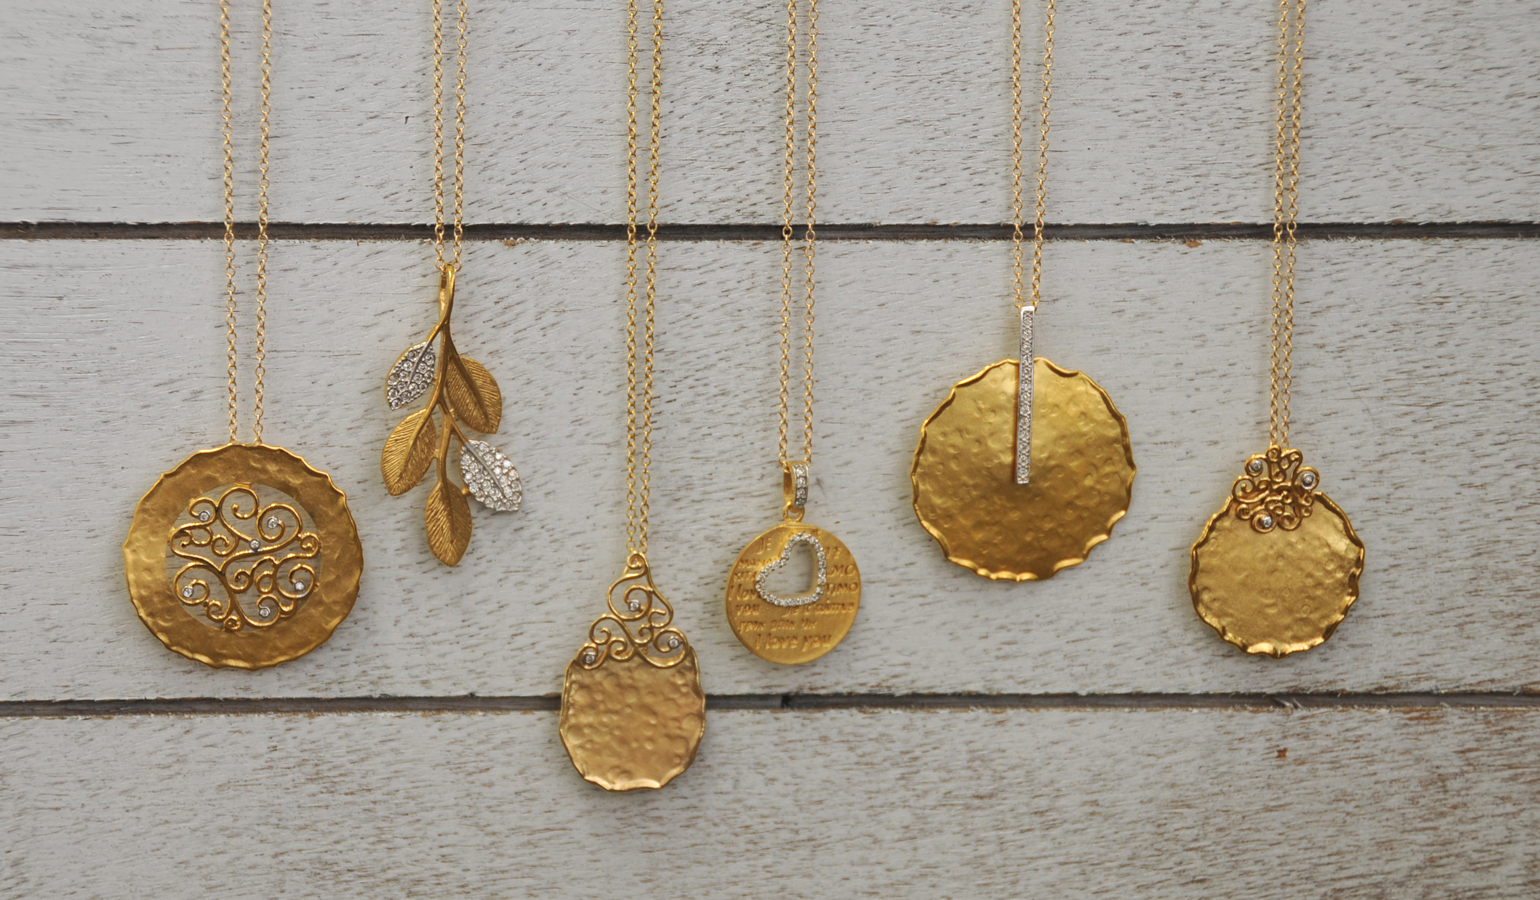 A variety of 14K yellow gold and diamond pendants by I. Reiss